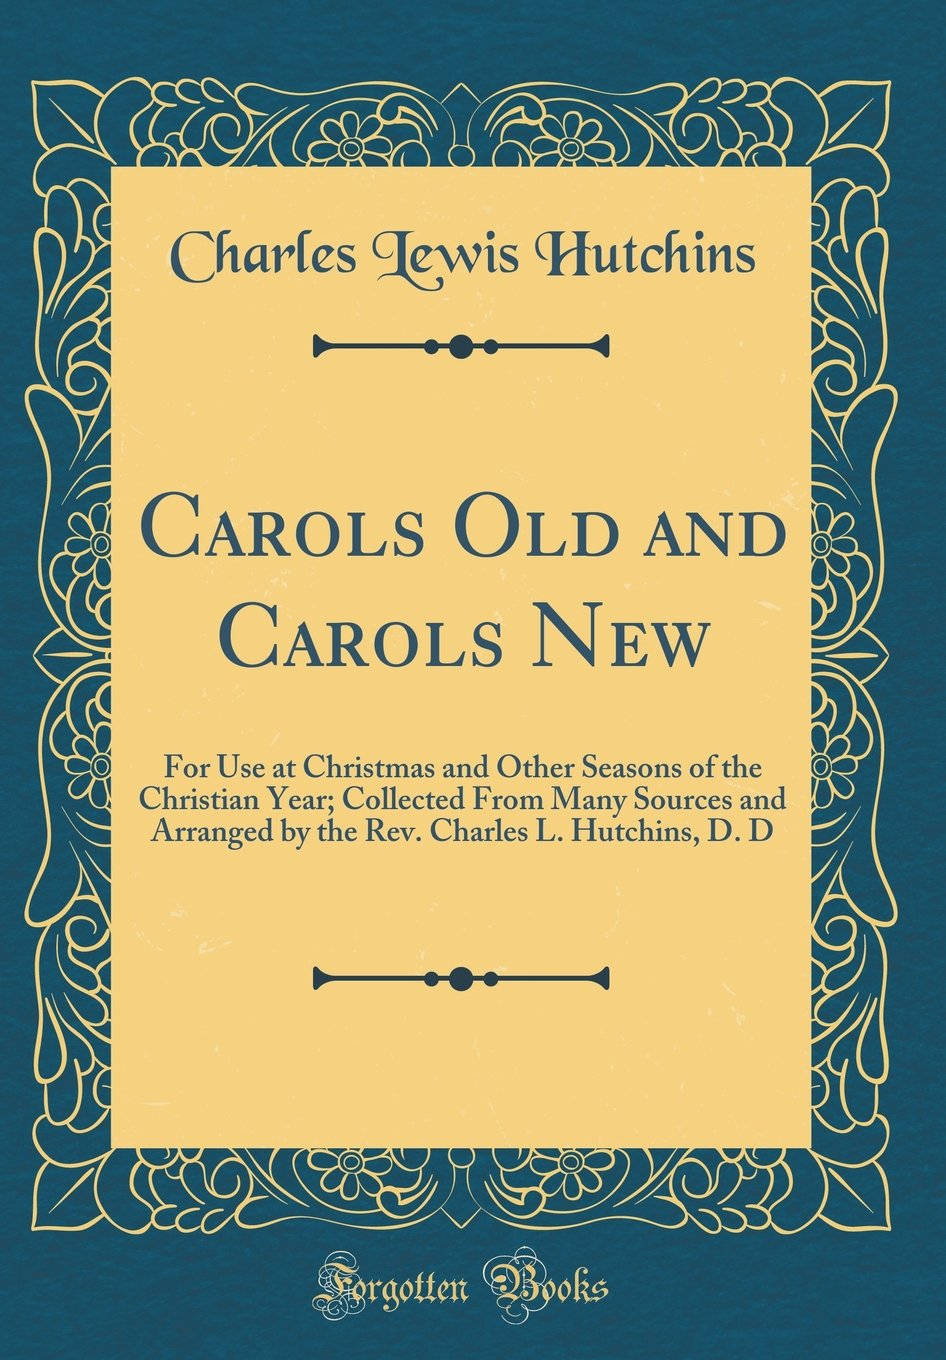 Carols Old and Carols New: For Use at Christmas and Other Seasons of the Christian Year; Collected from Many Sources and Arranged by the Rev. Charles L. Hutchins, D. D (Classic Reprint) pdf epub